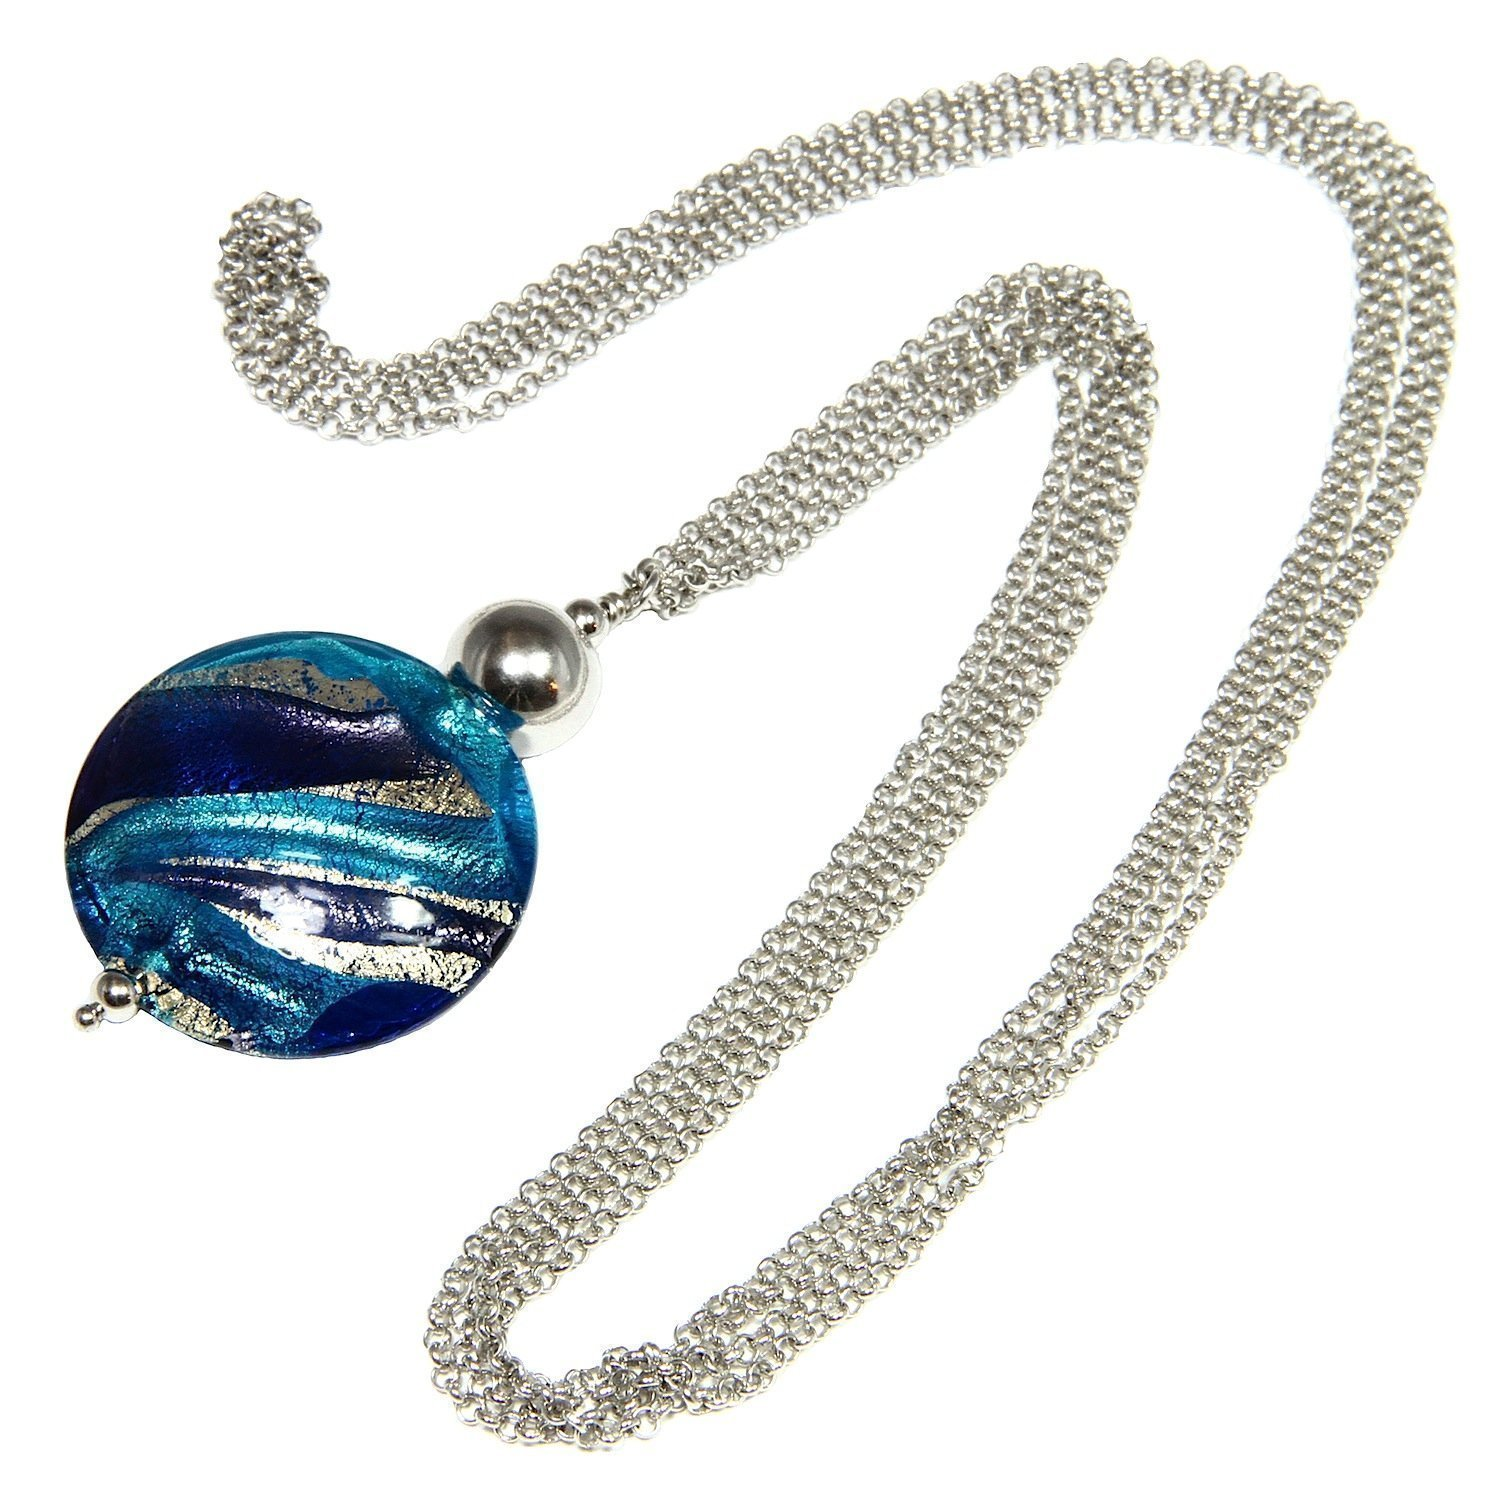 Necklace, woman in 925 silver rhodium plated, stainless steel and Murano glass enhanced by a white gold leaf made in Florence. CCR012/W07